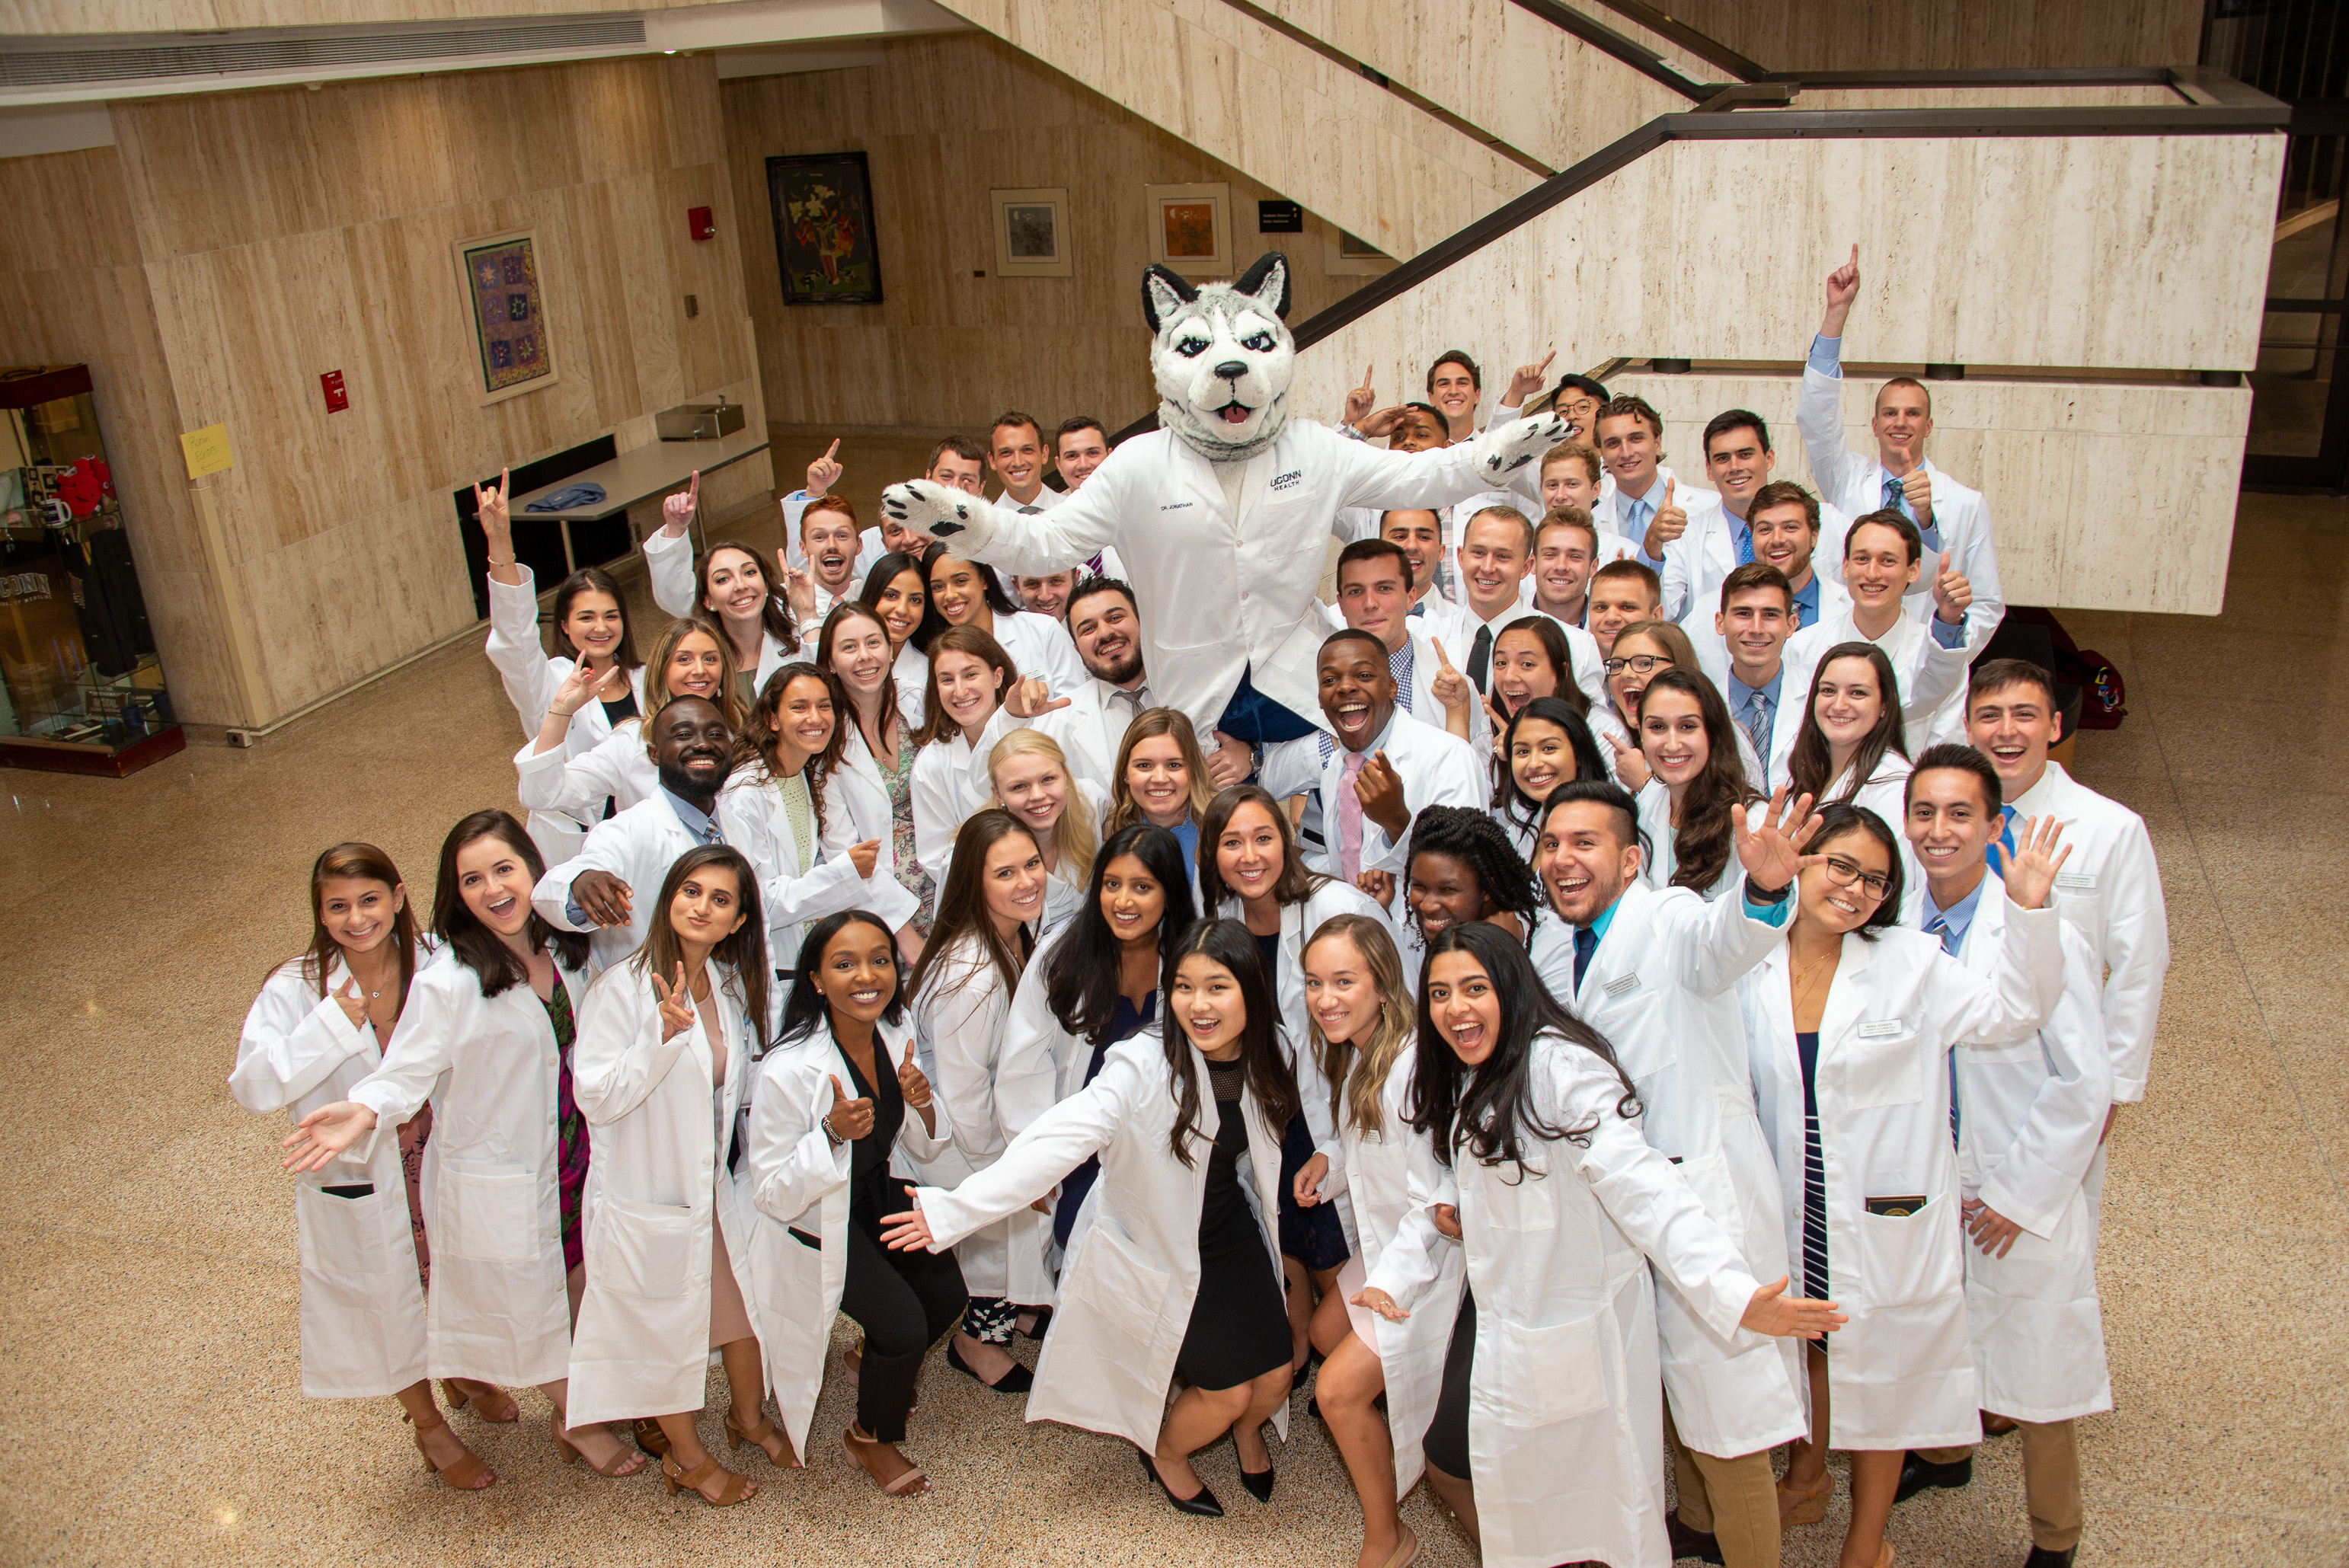 Fifty-four students in the UConn School of Dental Medicine Class of 2023 (pictured) received their white coats on Aug. 23, along with UConn School of Medicine's 110 new medical students. (Tina Encarnacion/UConn Health photo)